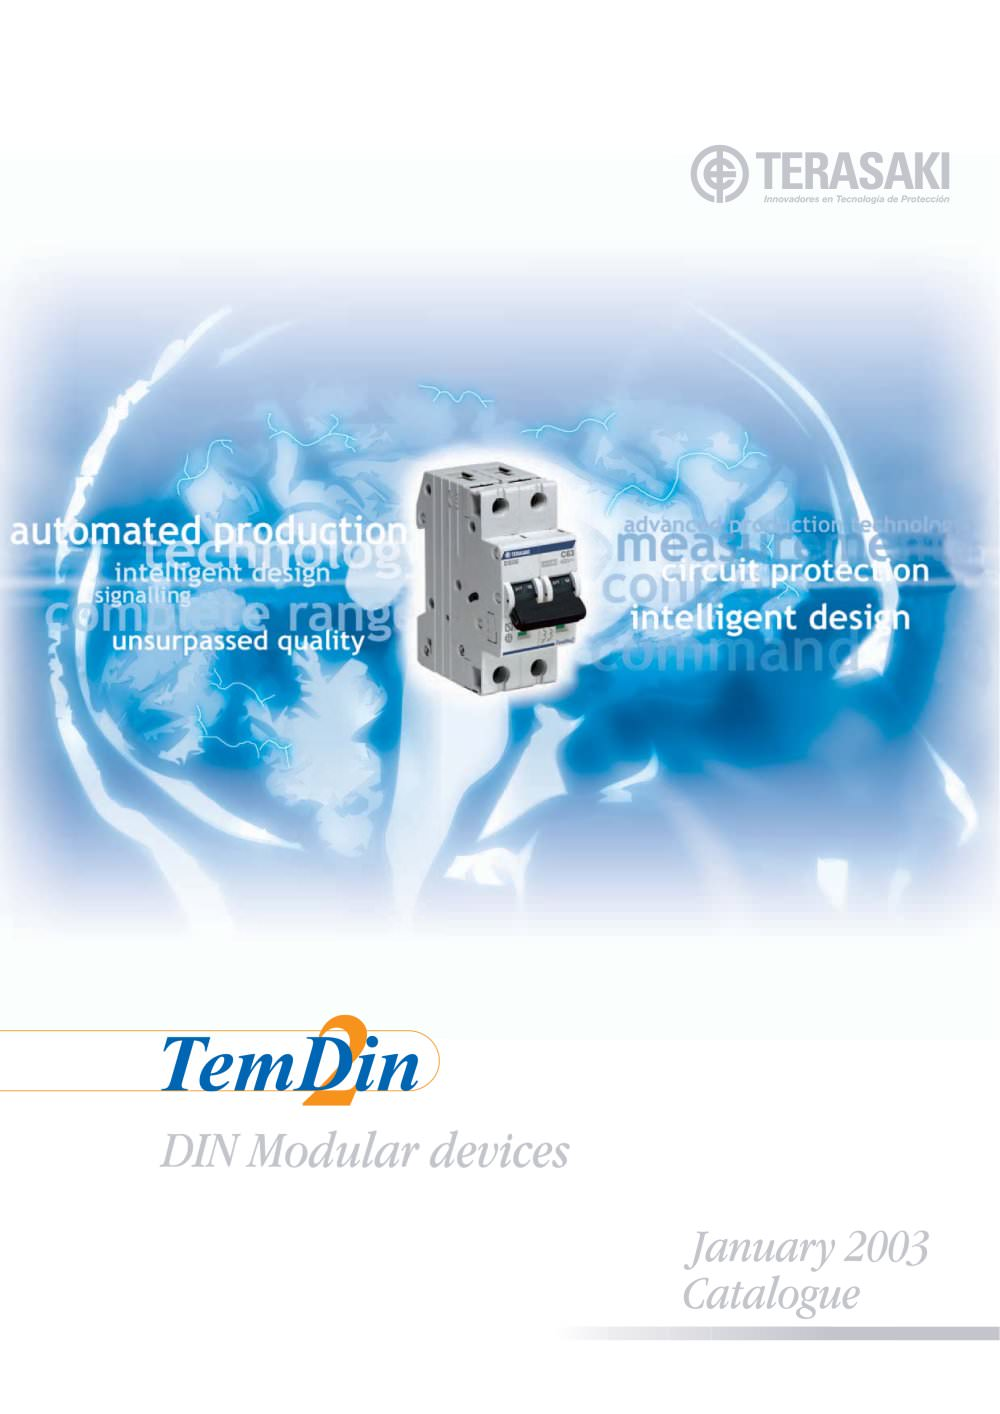 Temdin Miniature Circuit Breaker Terasaki Electric Ltd Pdf Ac 220v 32a 2 Pole 2p On Off Switch Earth Leakage 1 107 Pages